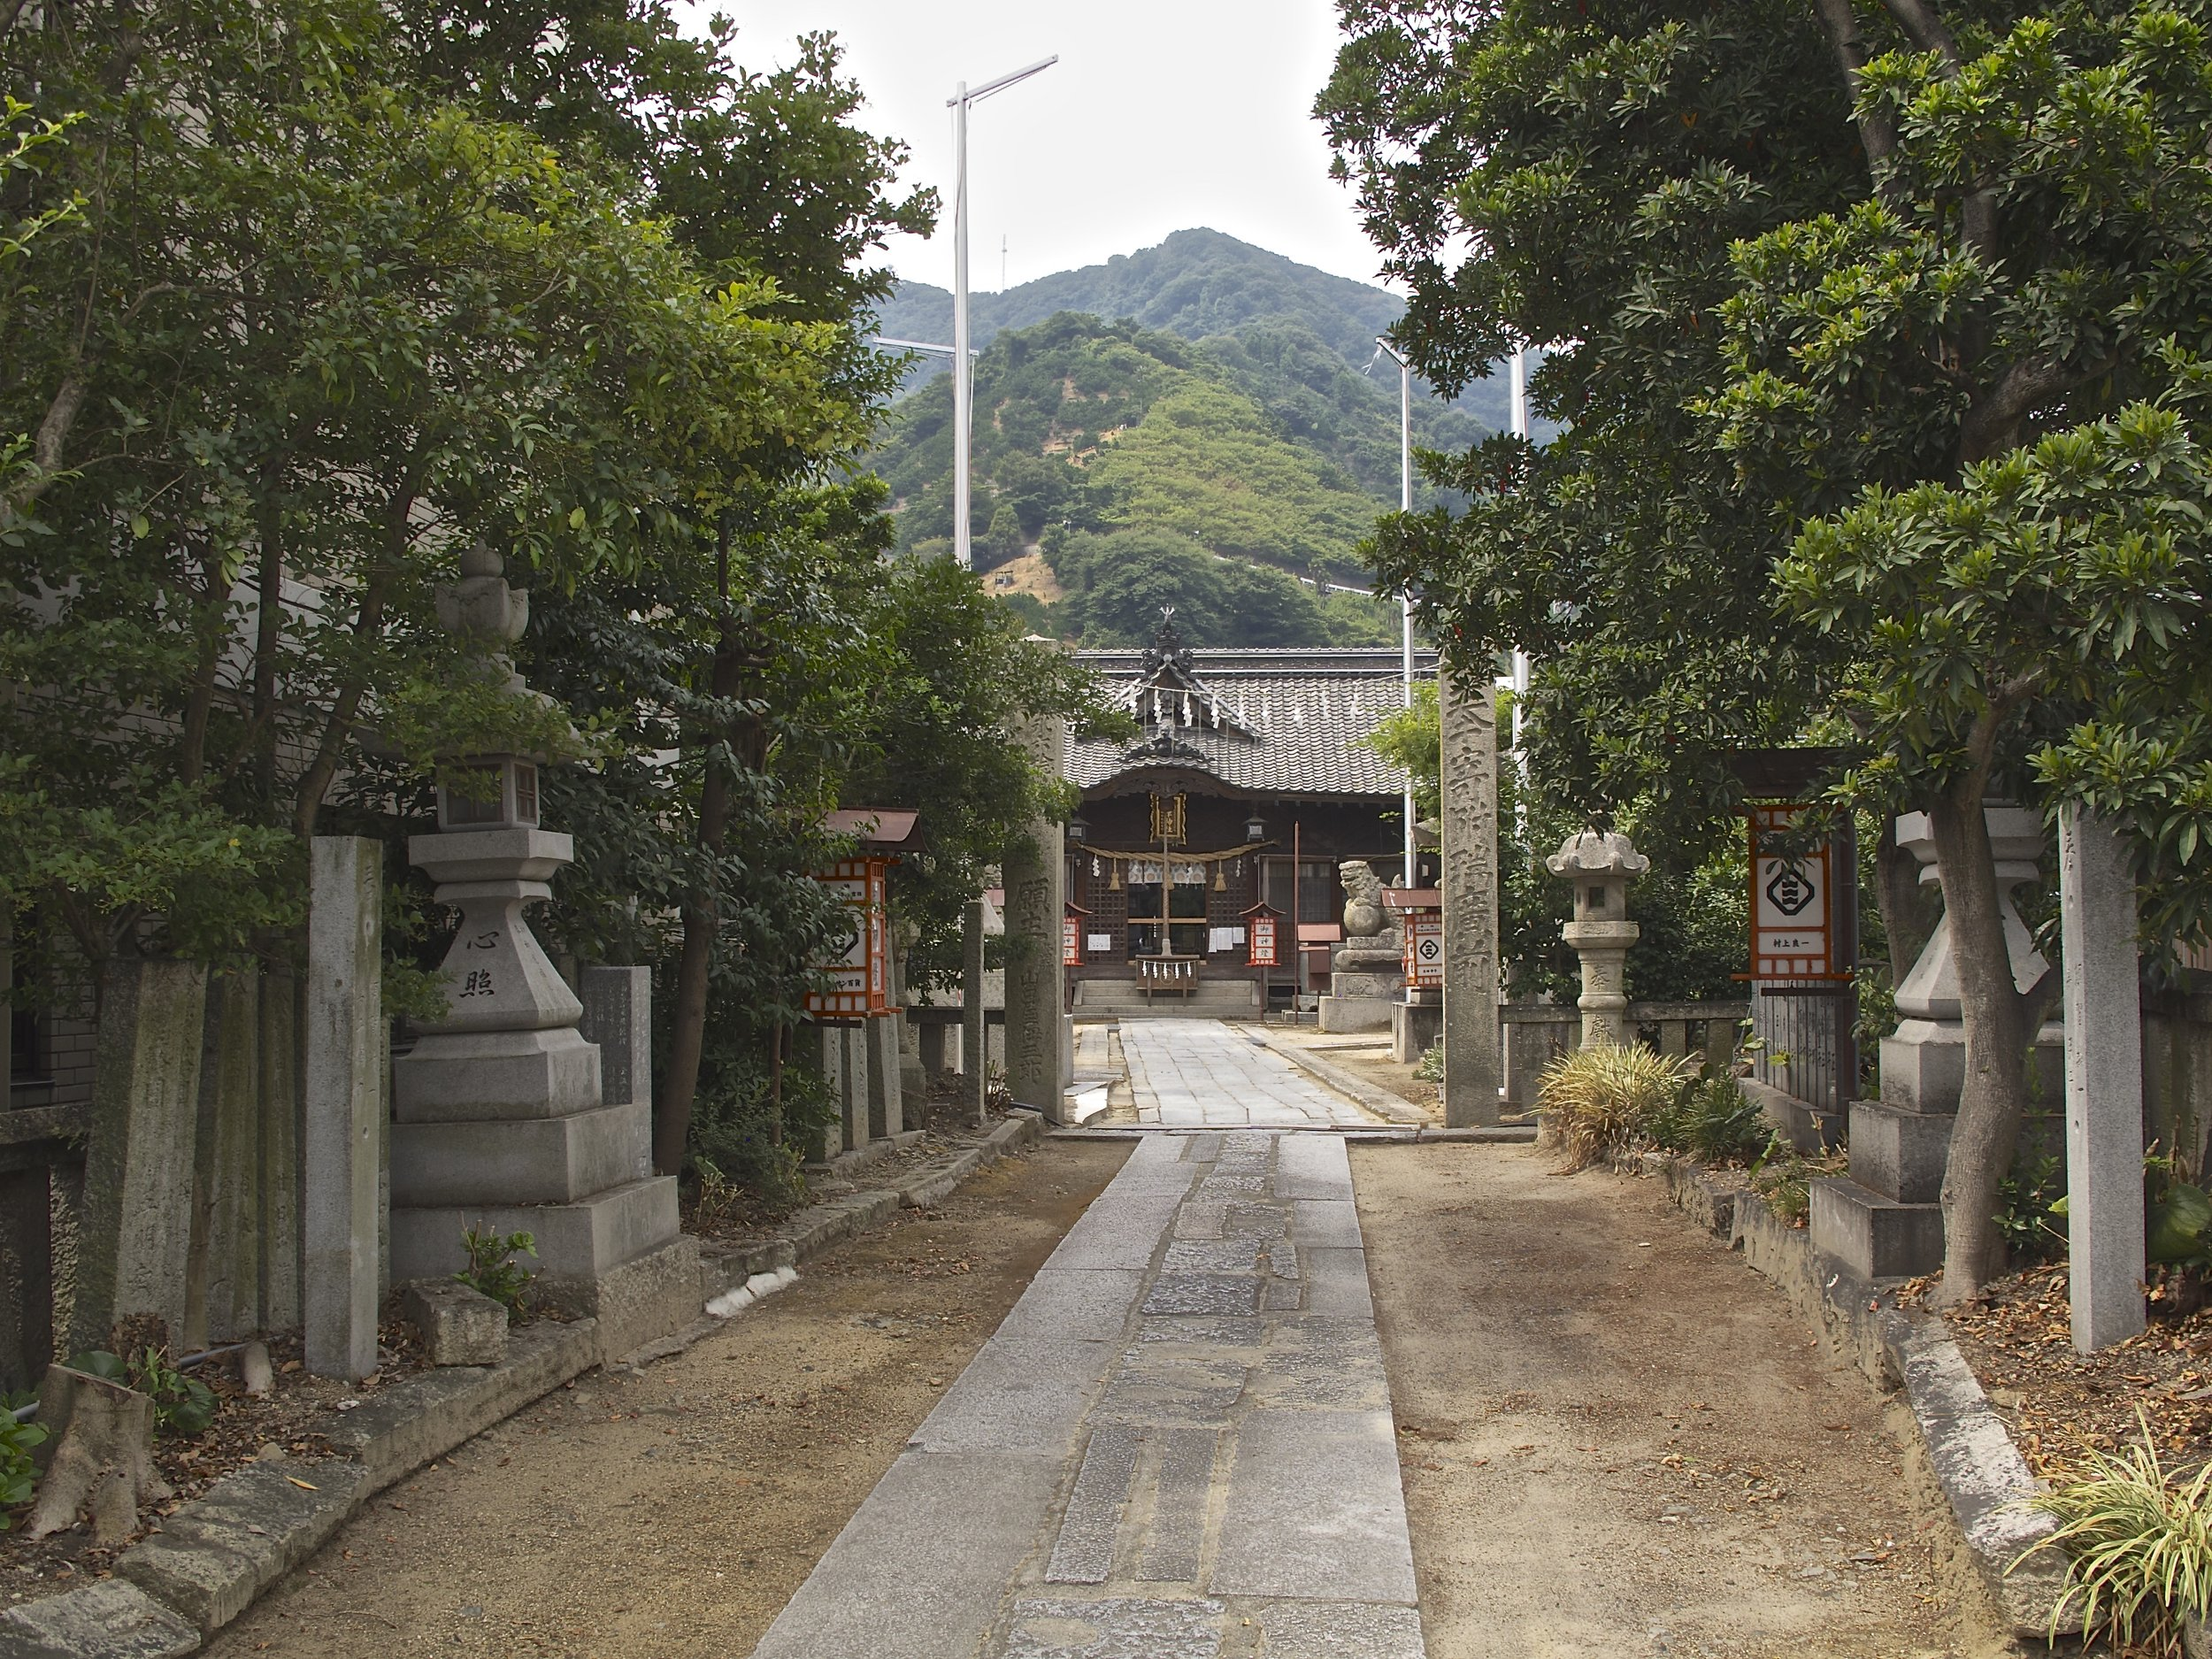 The Utsu Shinto shrine in the town of Ocho is believed to be over 2,000 years old.